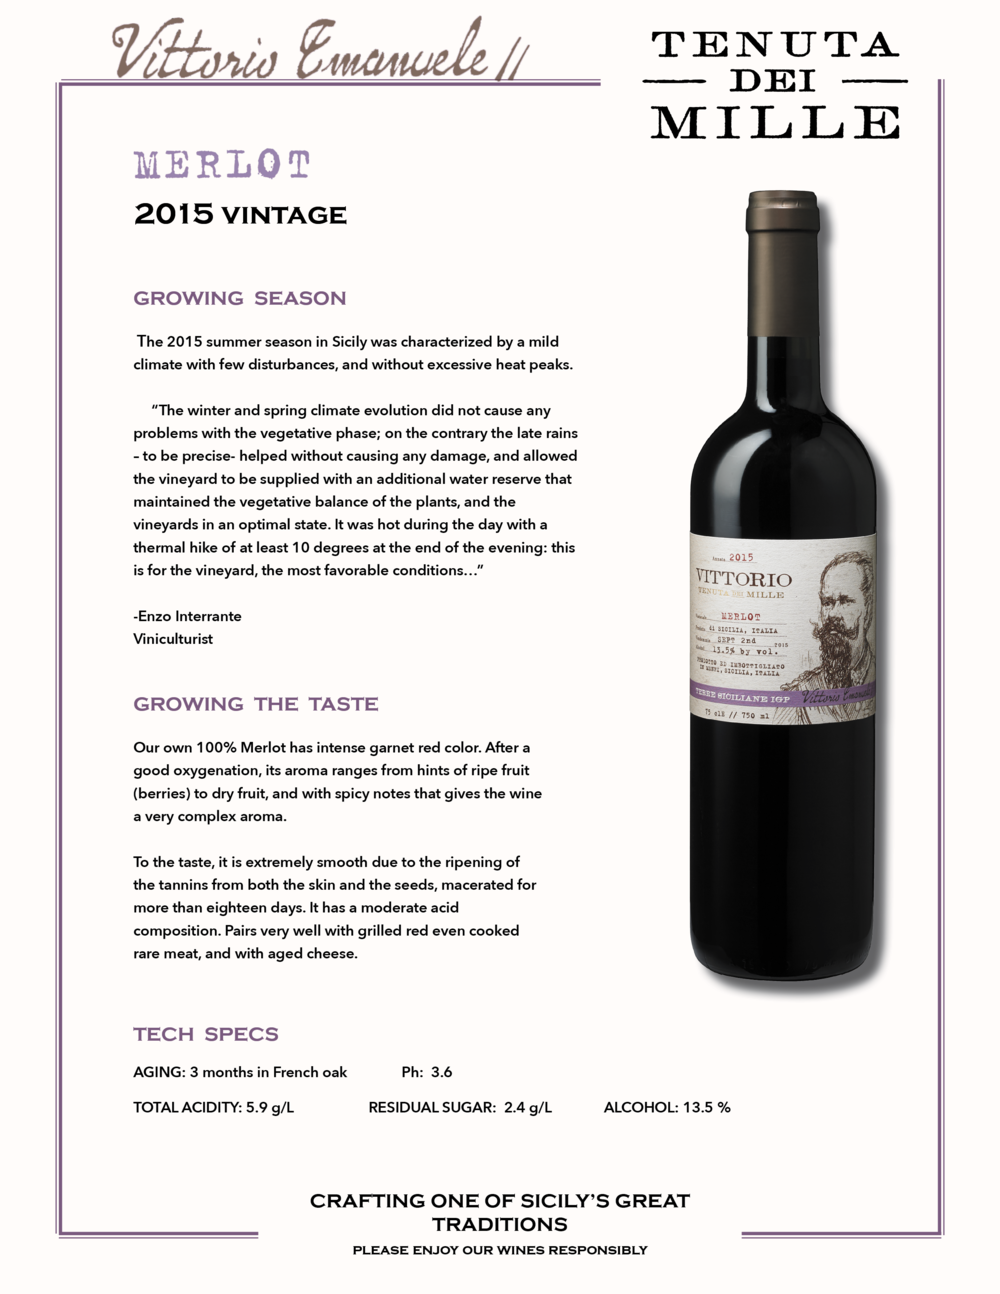 Vittorio_TASTING NOTES.png